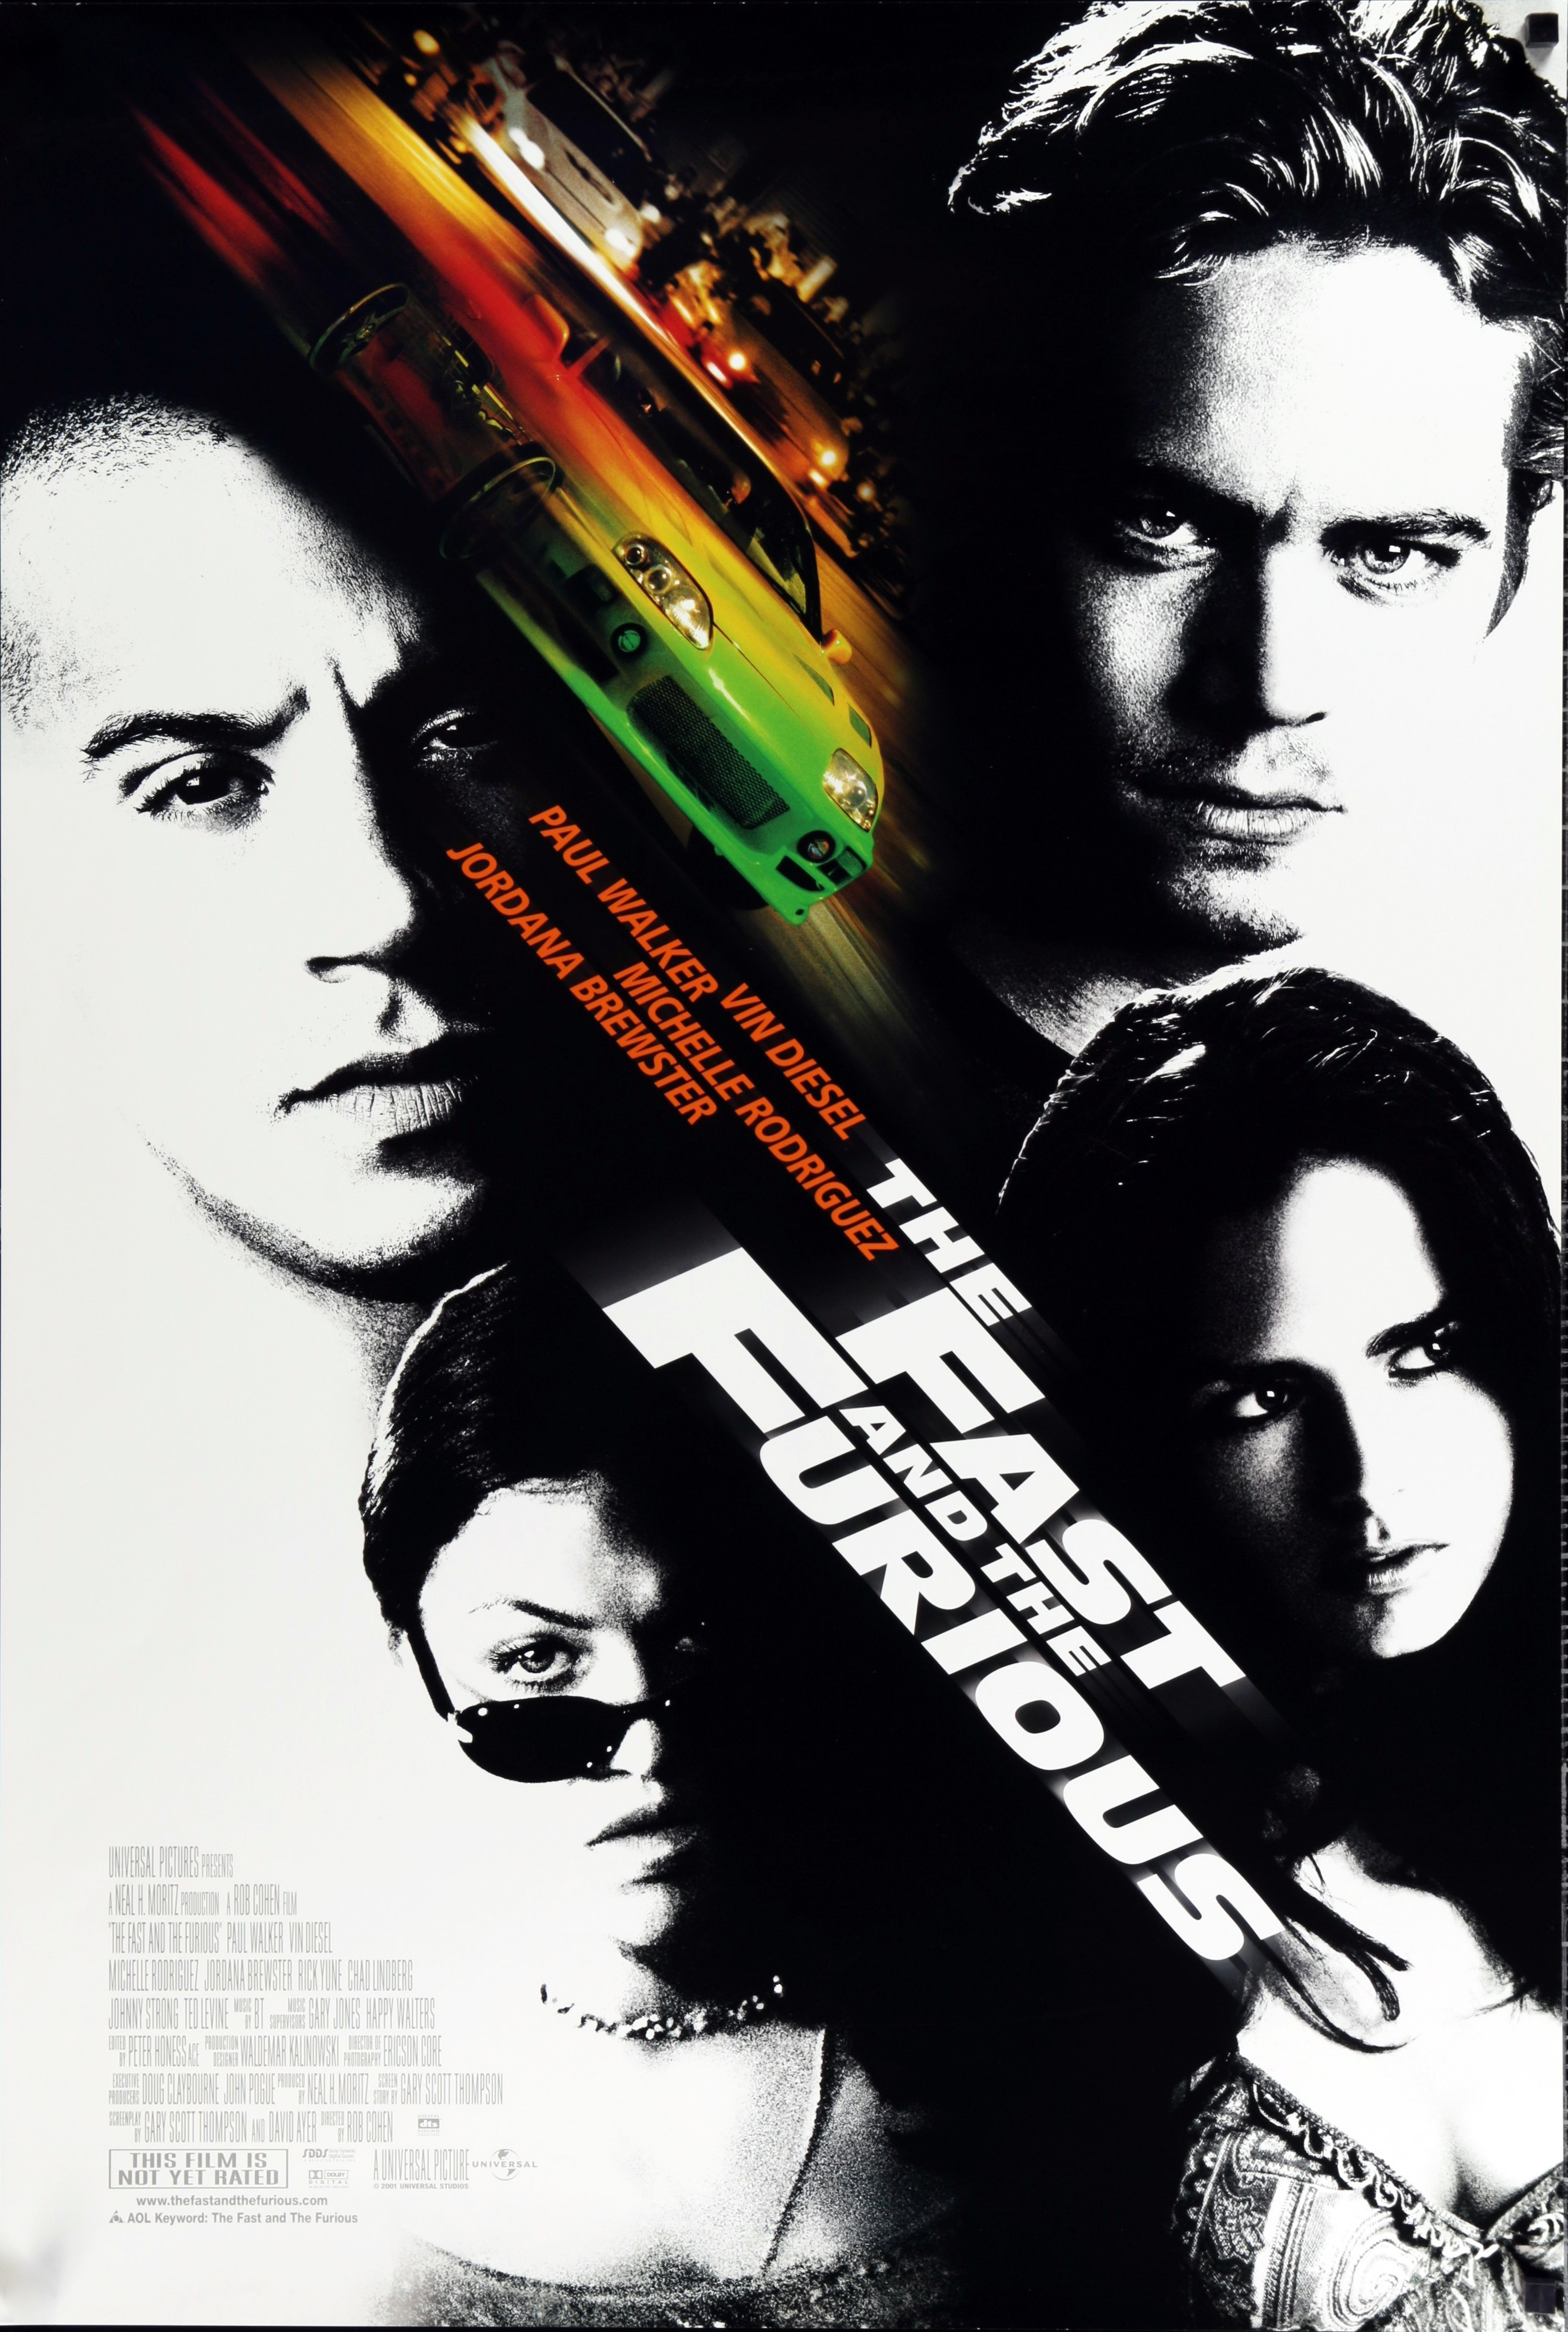 The Fast and the Furious (2001) BluRay 480p, 720p, 1080p & 4K-2160p